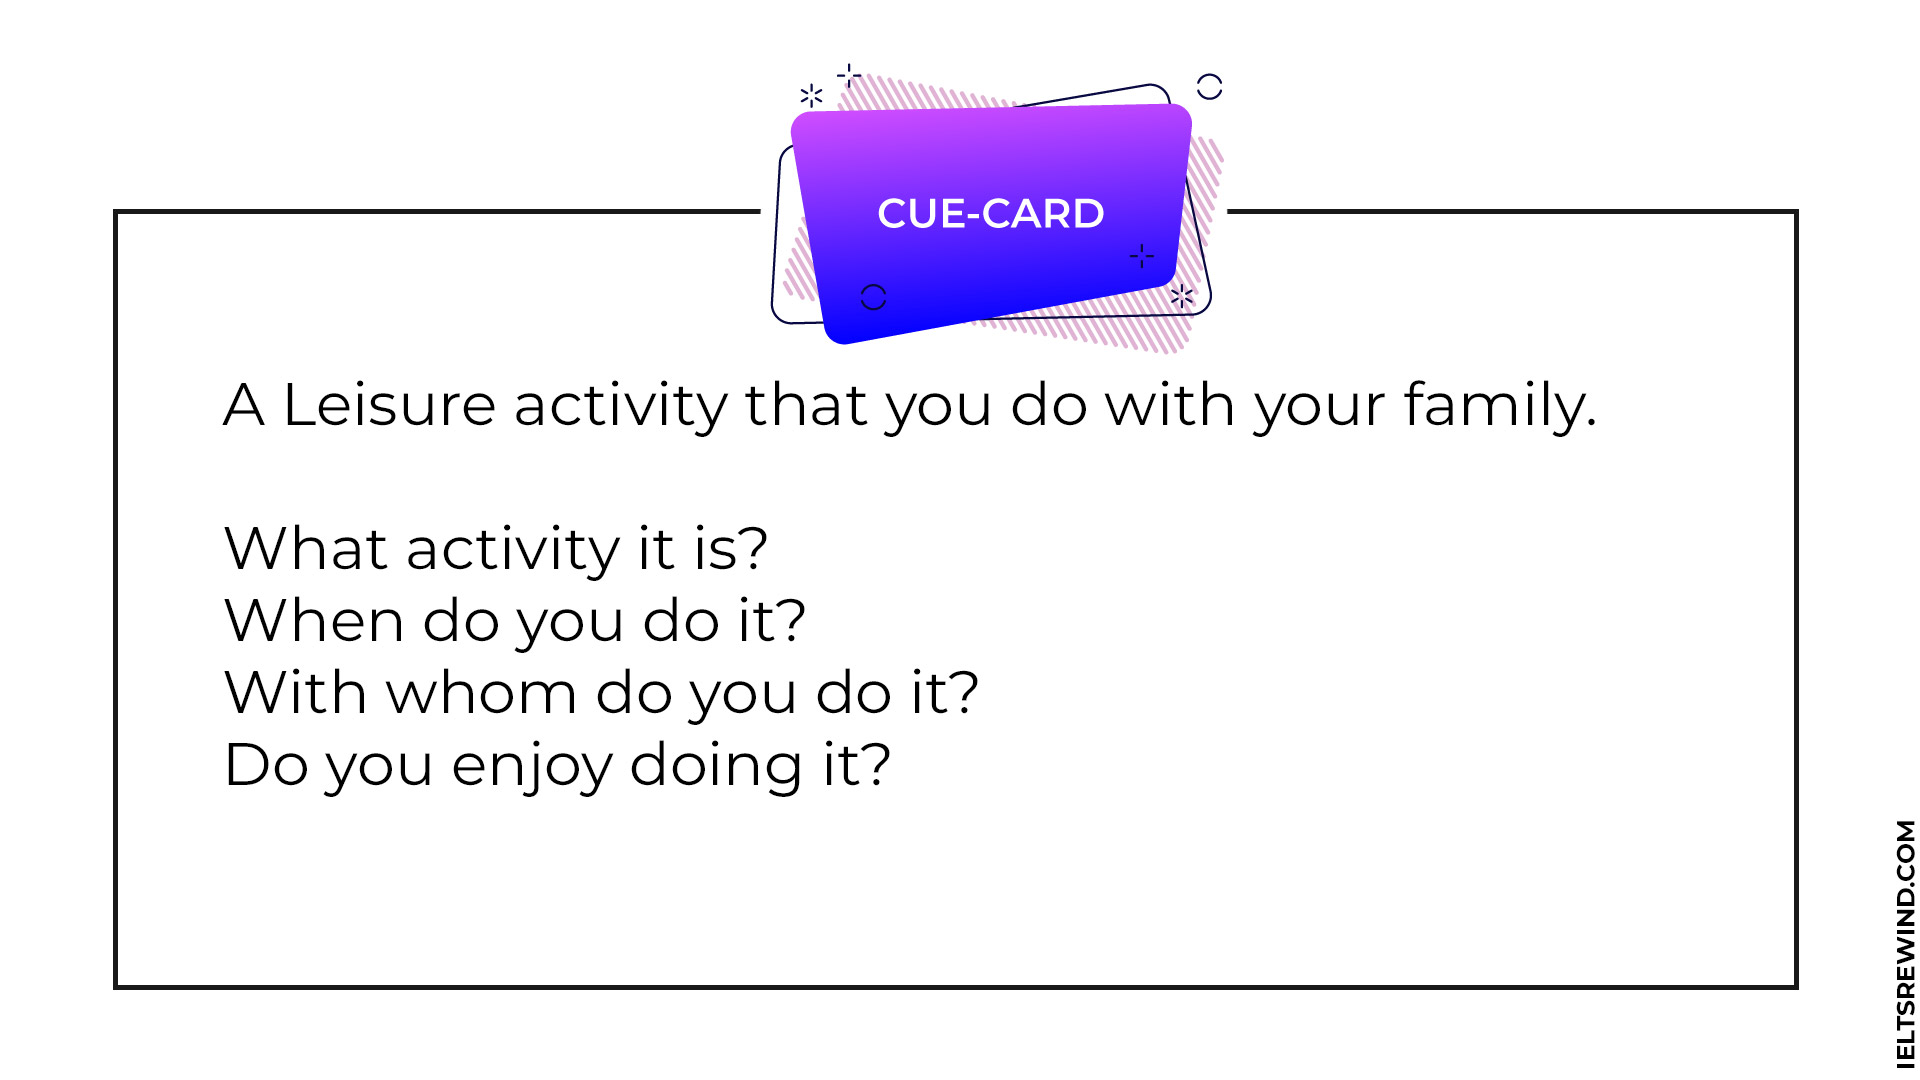 Describe a leisure activity that you do with your family IELTS cue card